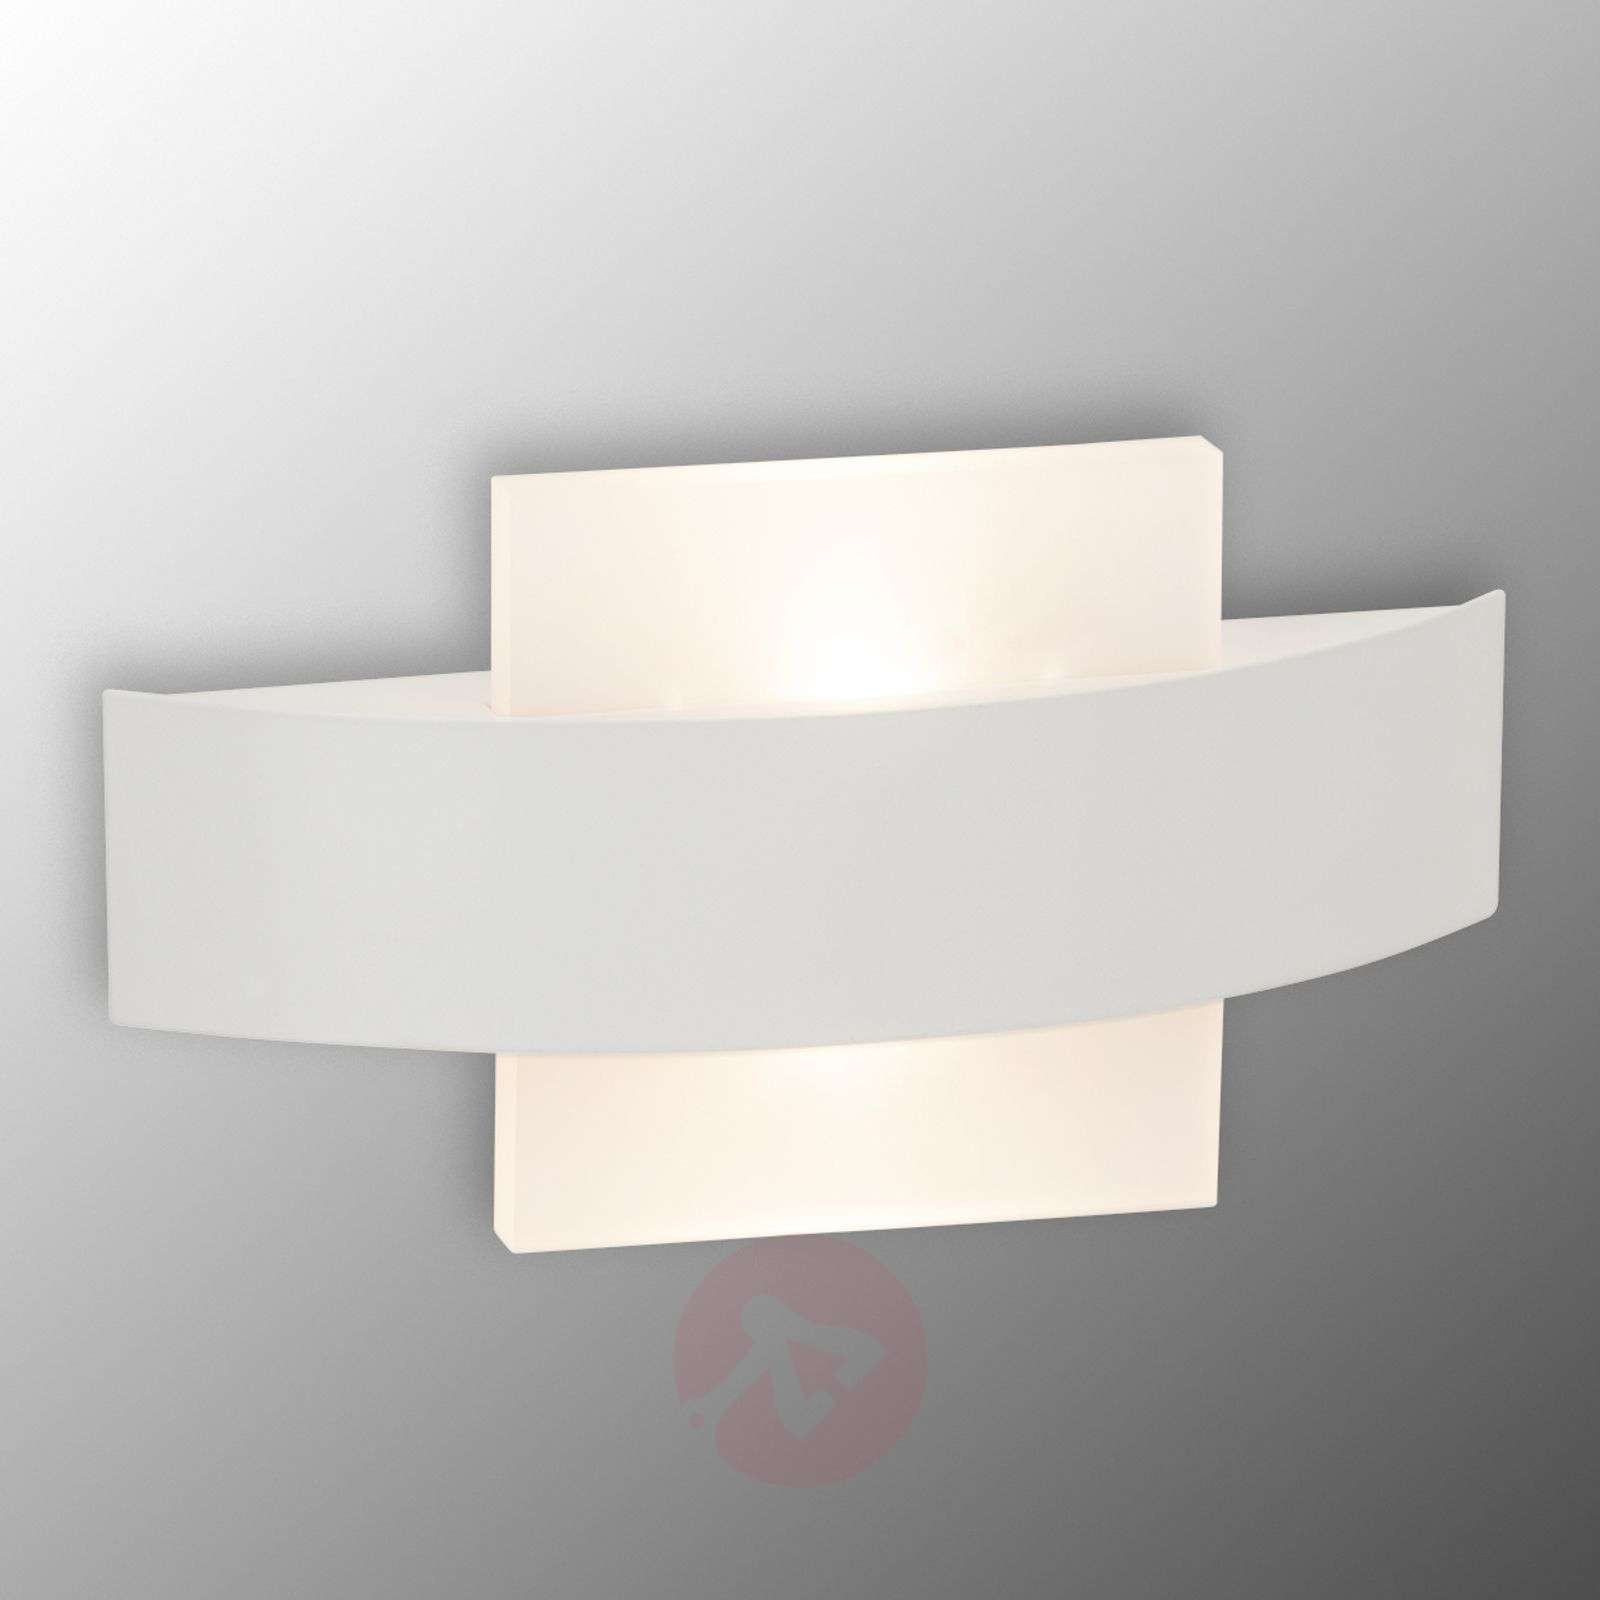 Solution LED-wandlamp vierkante diffuser-1509033-01